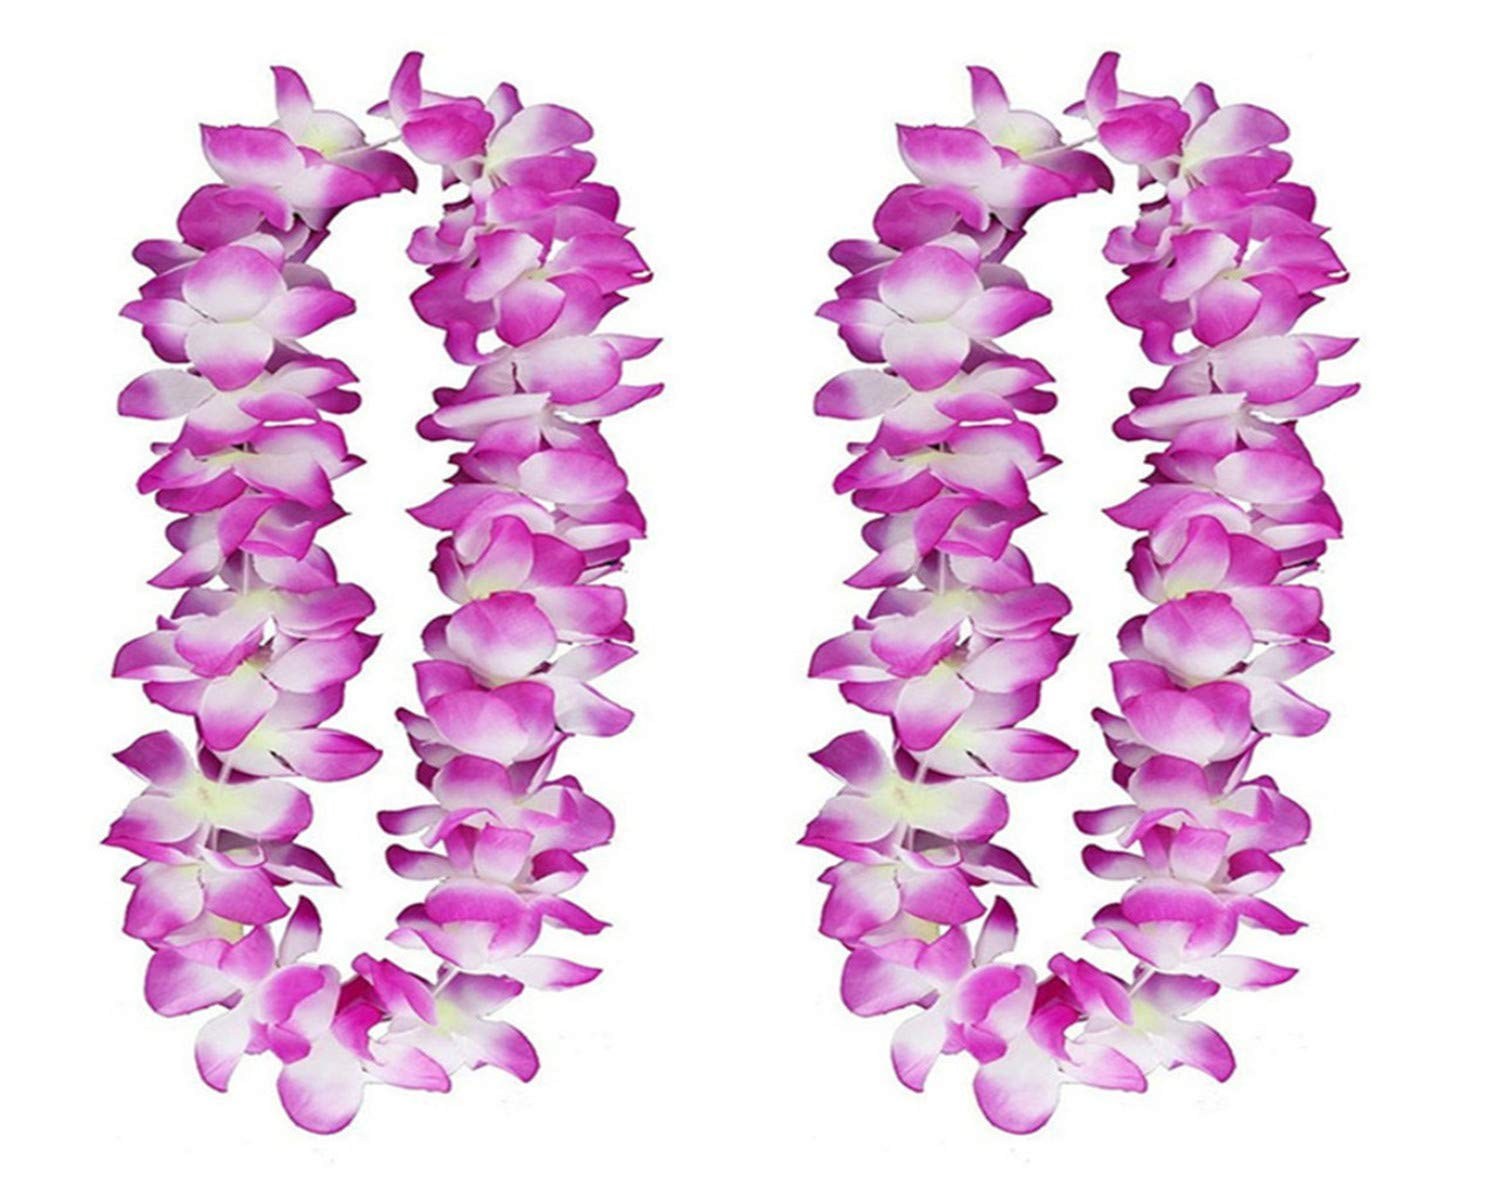 silk flower arrangements yansanido 41'' pack of 6 large size thickened fully graduation party hawaiian ruffled simulated silk flower leis necklace for party favor and hula-hula hawaiian dance (purple)